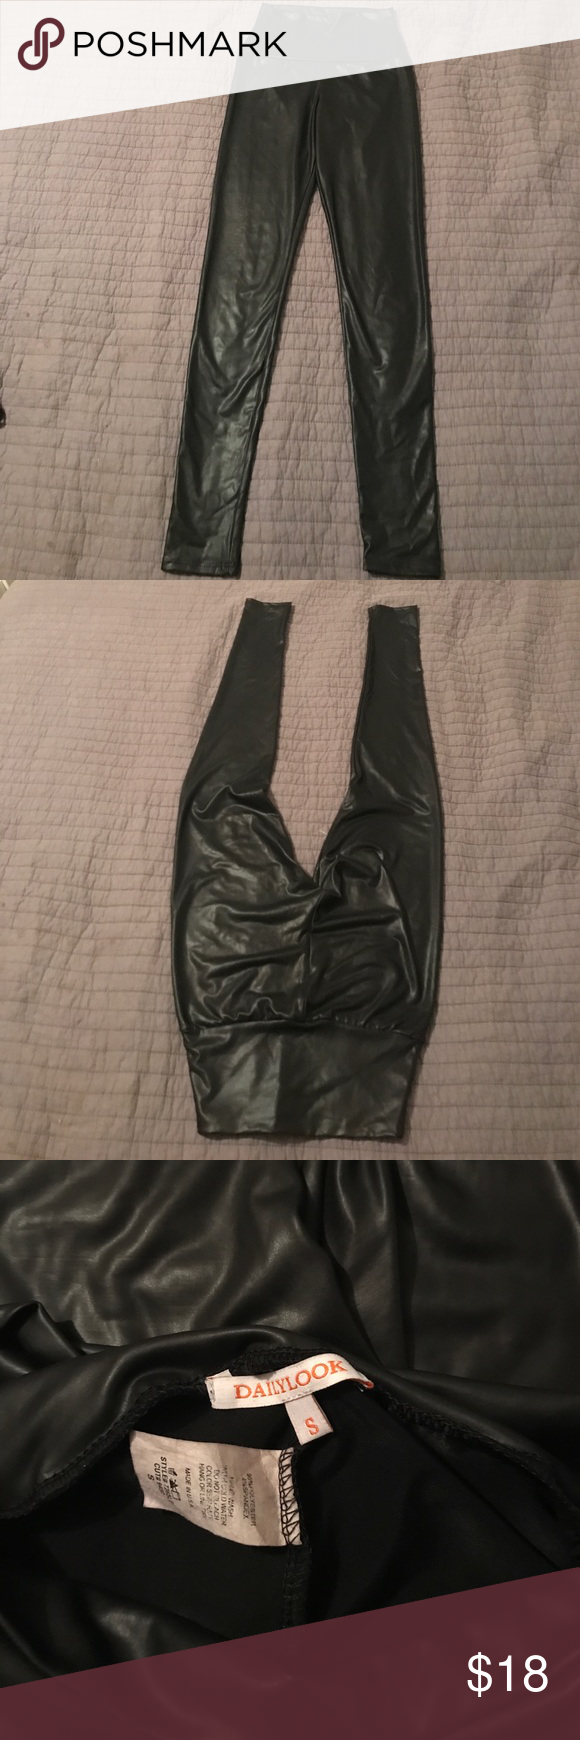 Faux leather leggings Faux leather leggings worn and washed once Pants Leggings